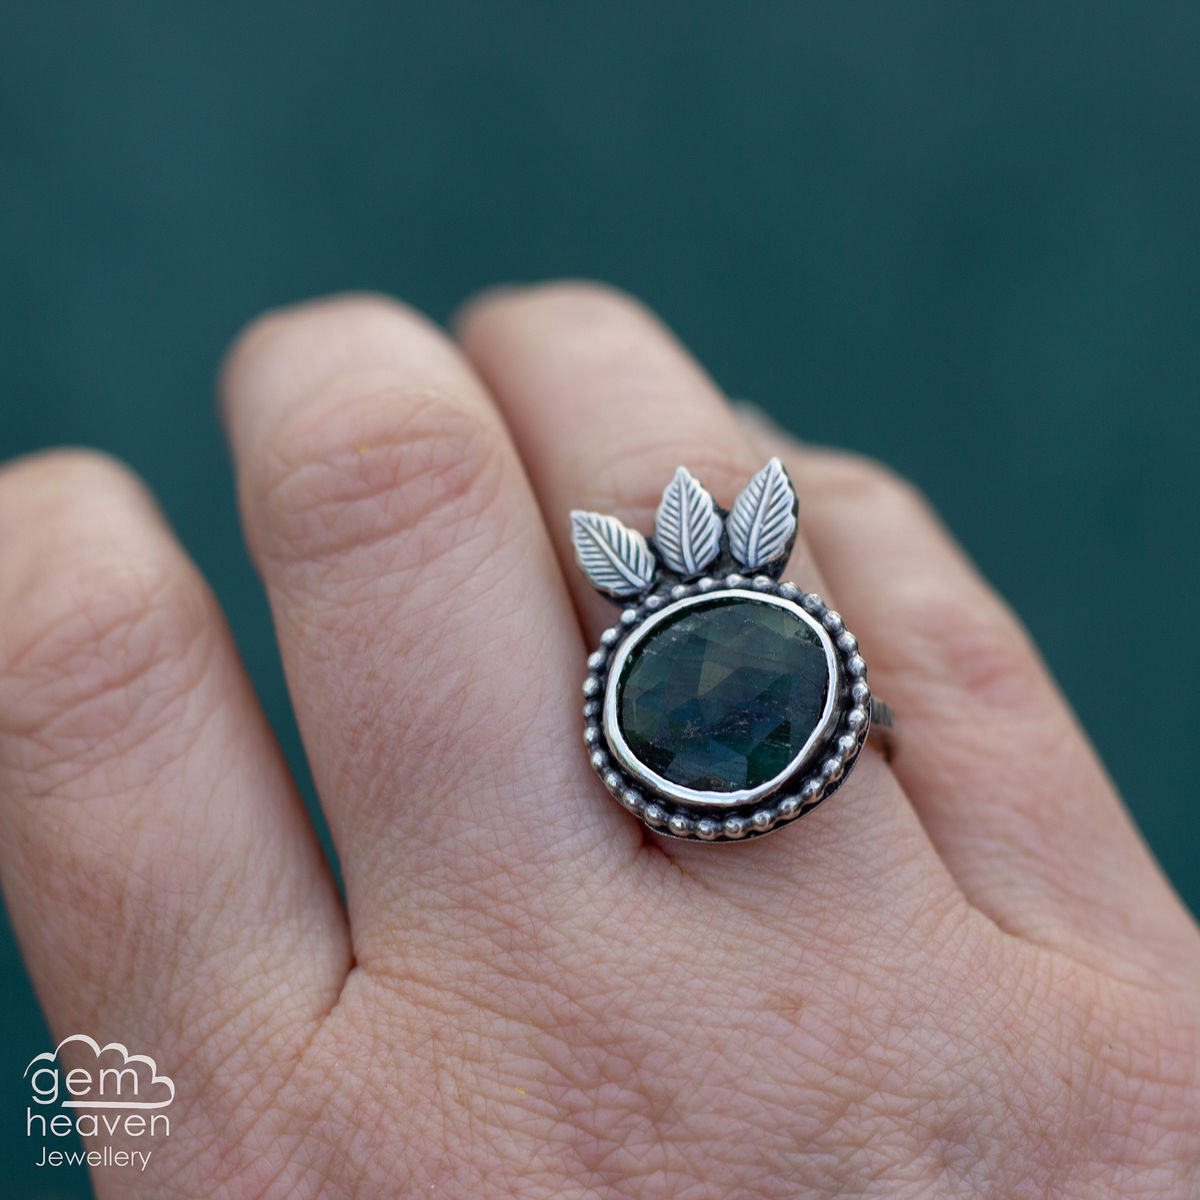 Lady of The Woods Rings - product image